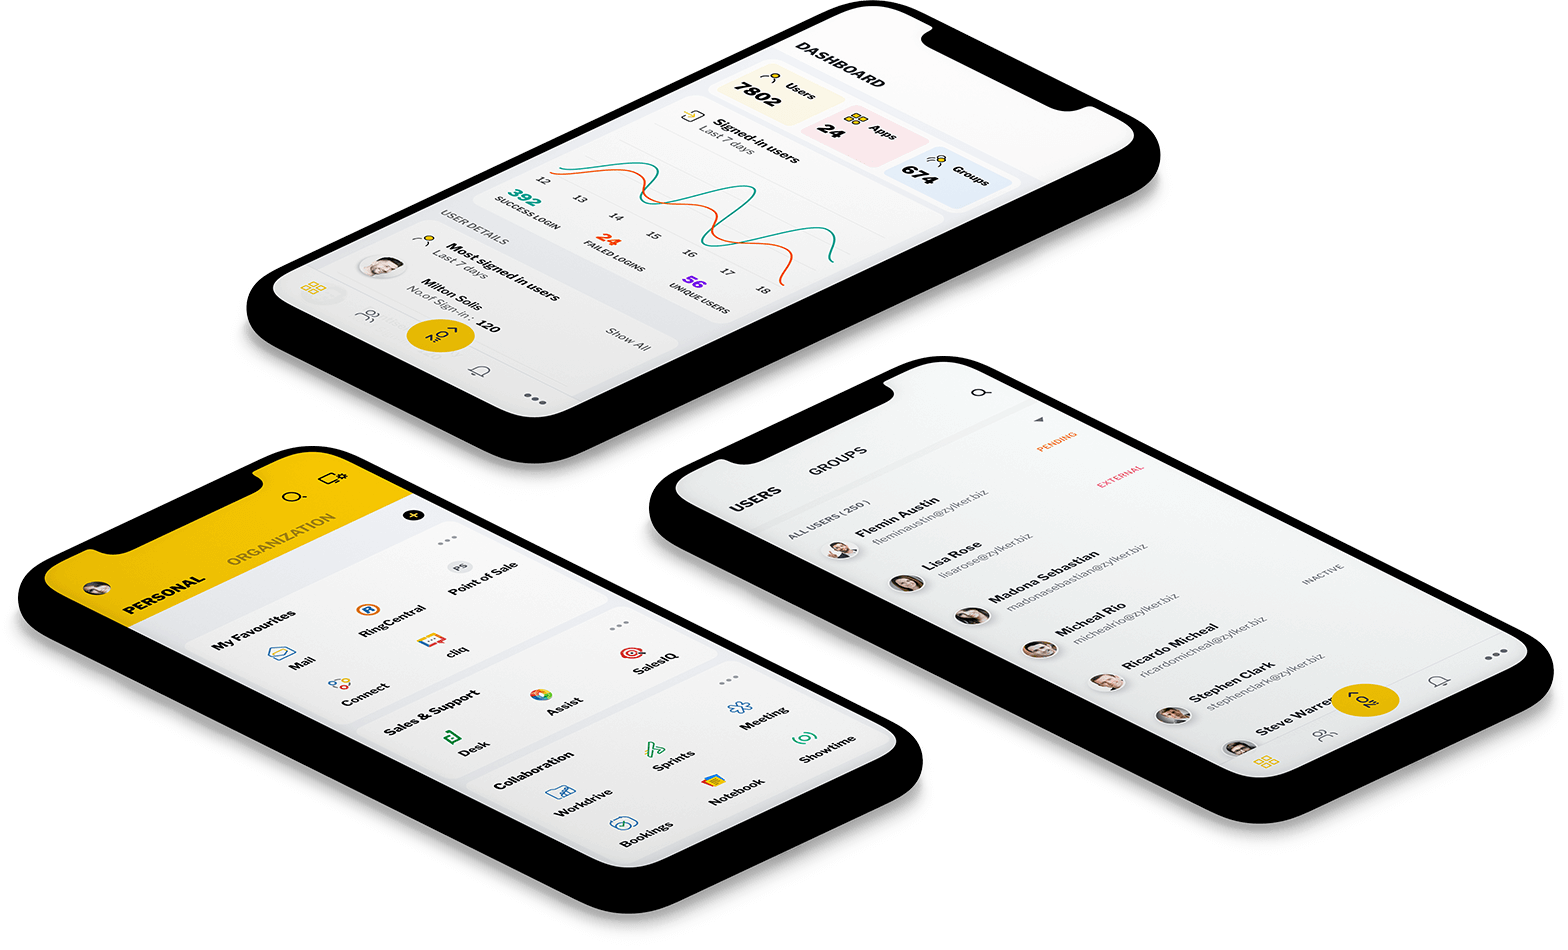 Zoho One Onboarding can help with Zoho Apps